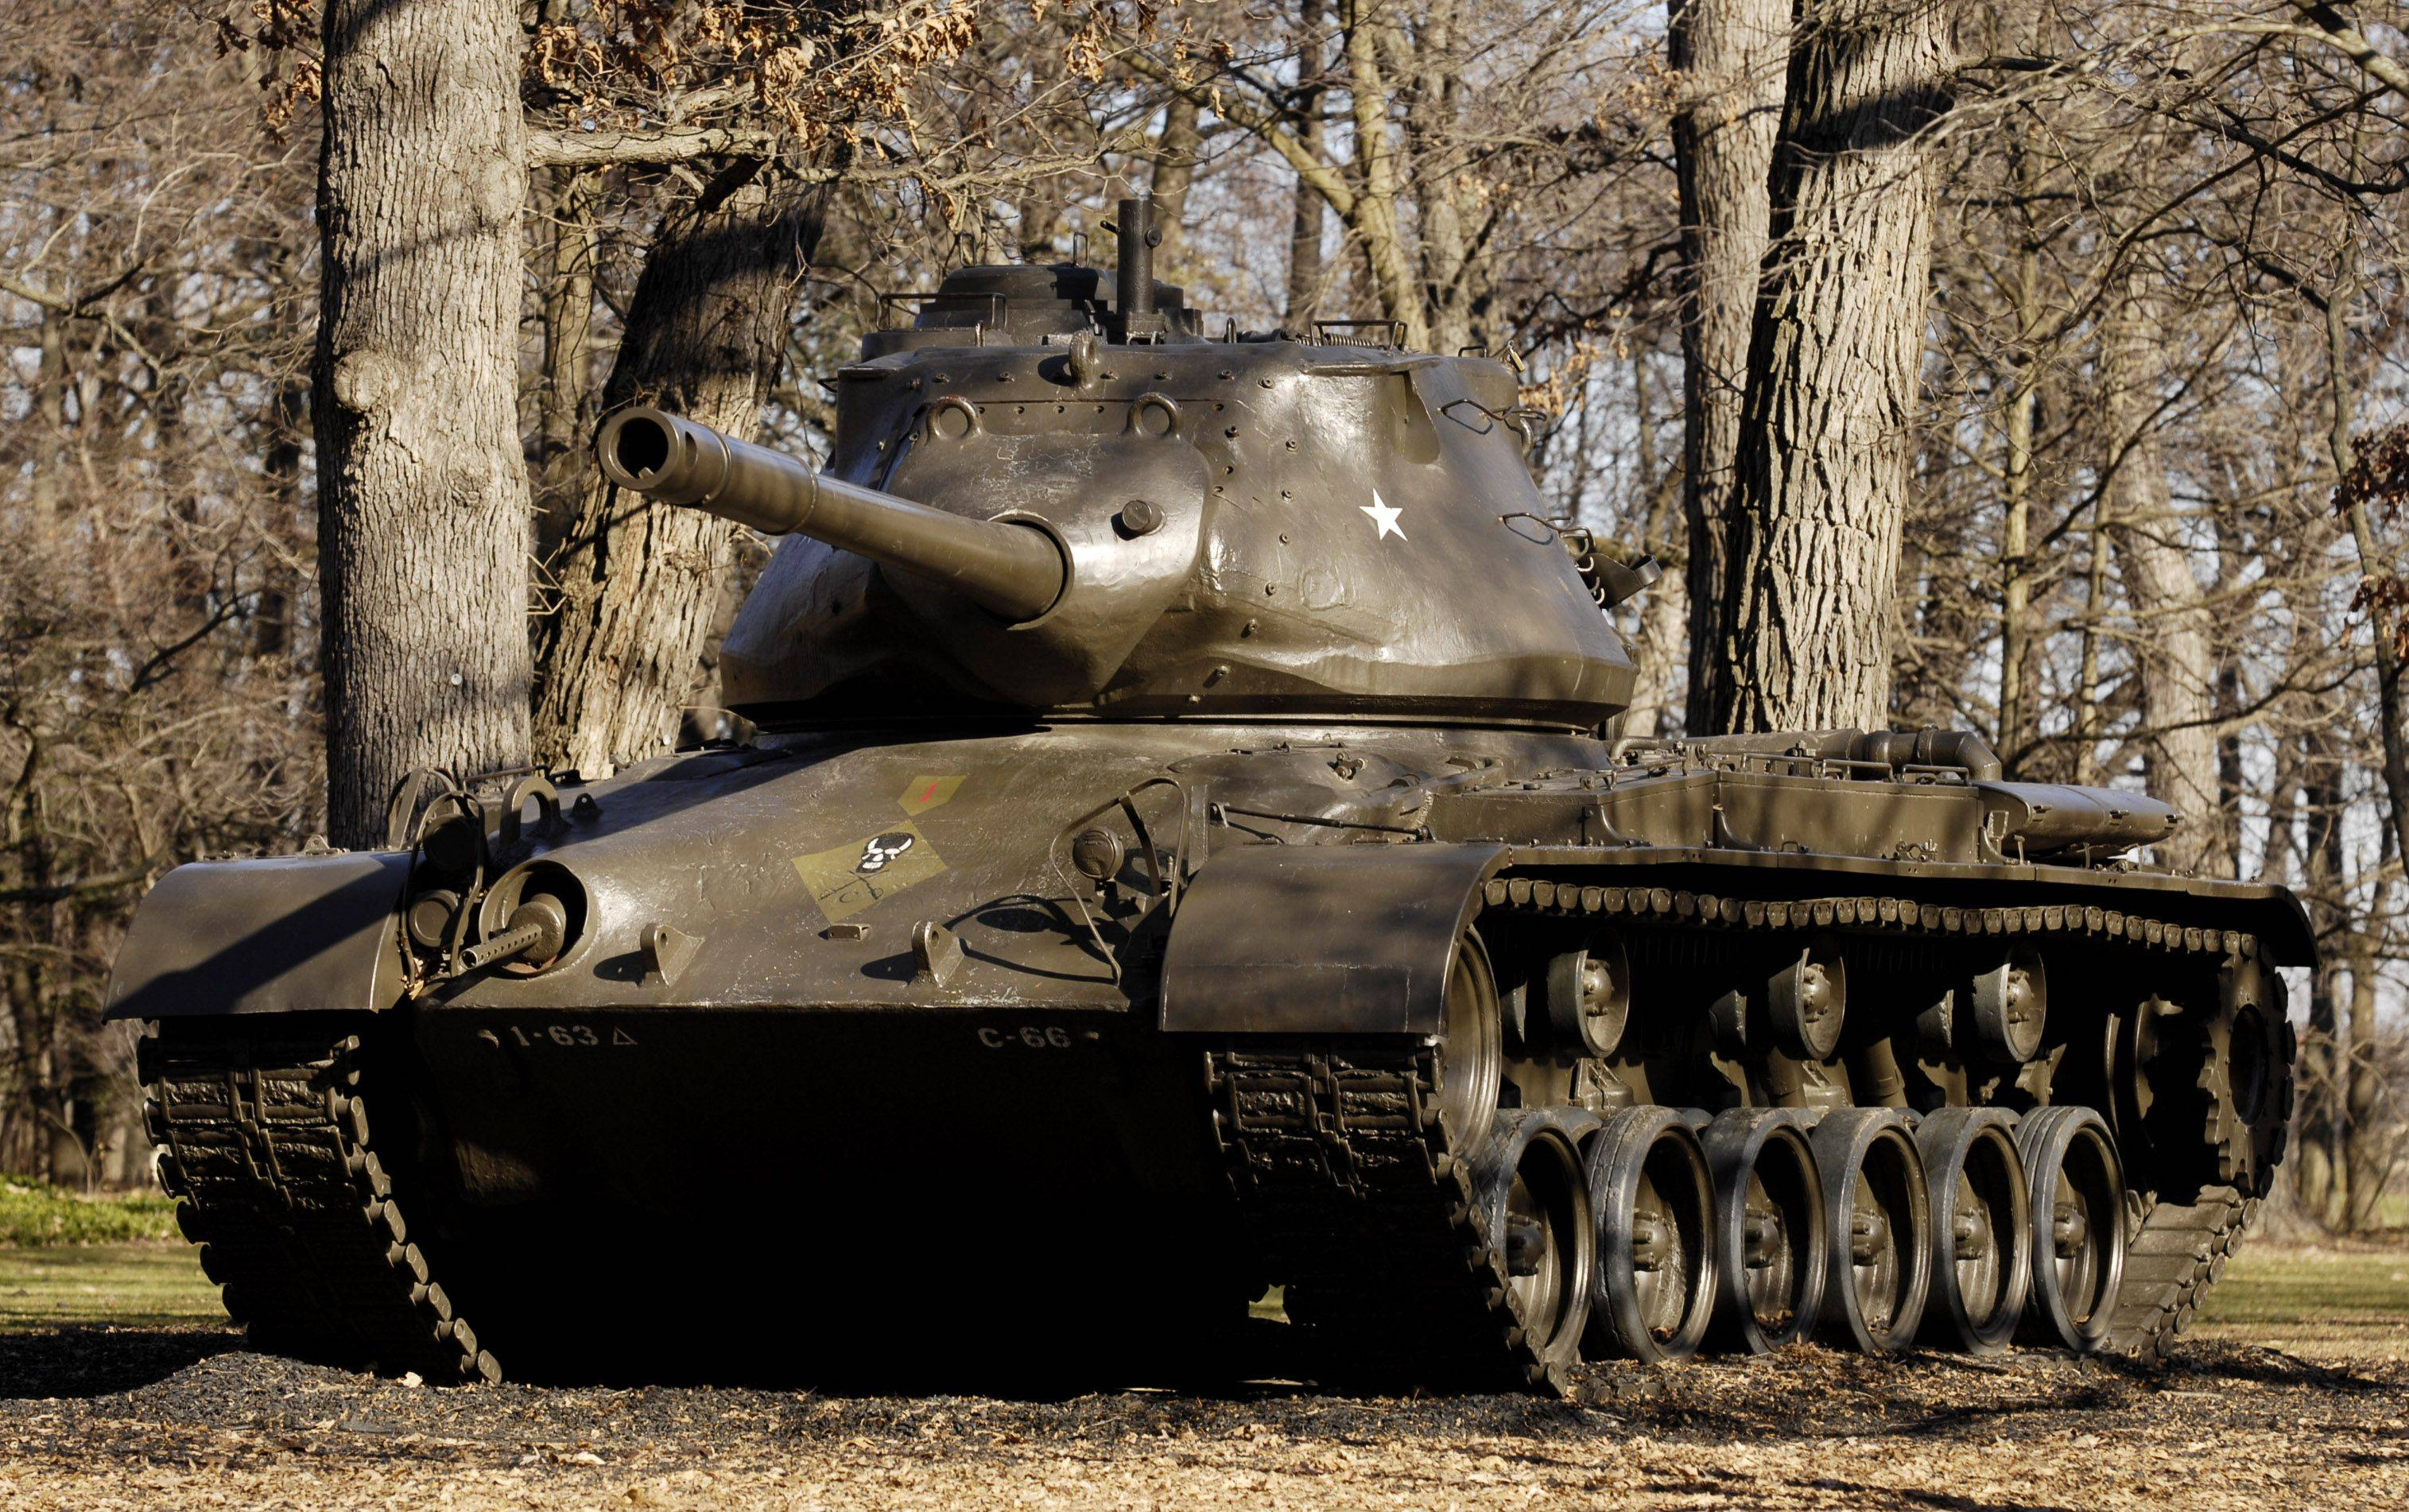 A cold war-era M47 Patton tank on display outside the 1st Division Museum at Cantigny Park in Wheaton.